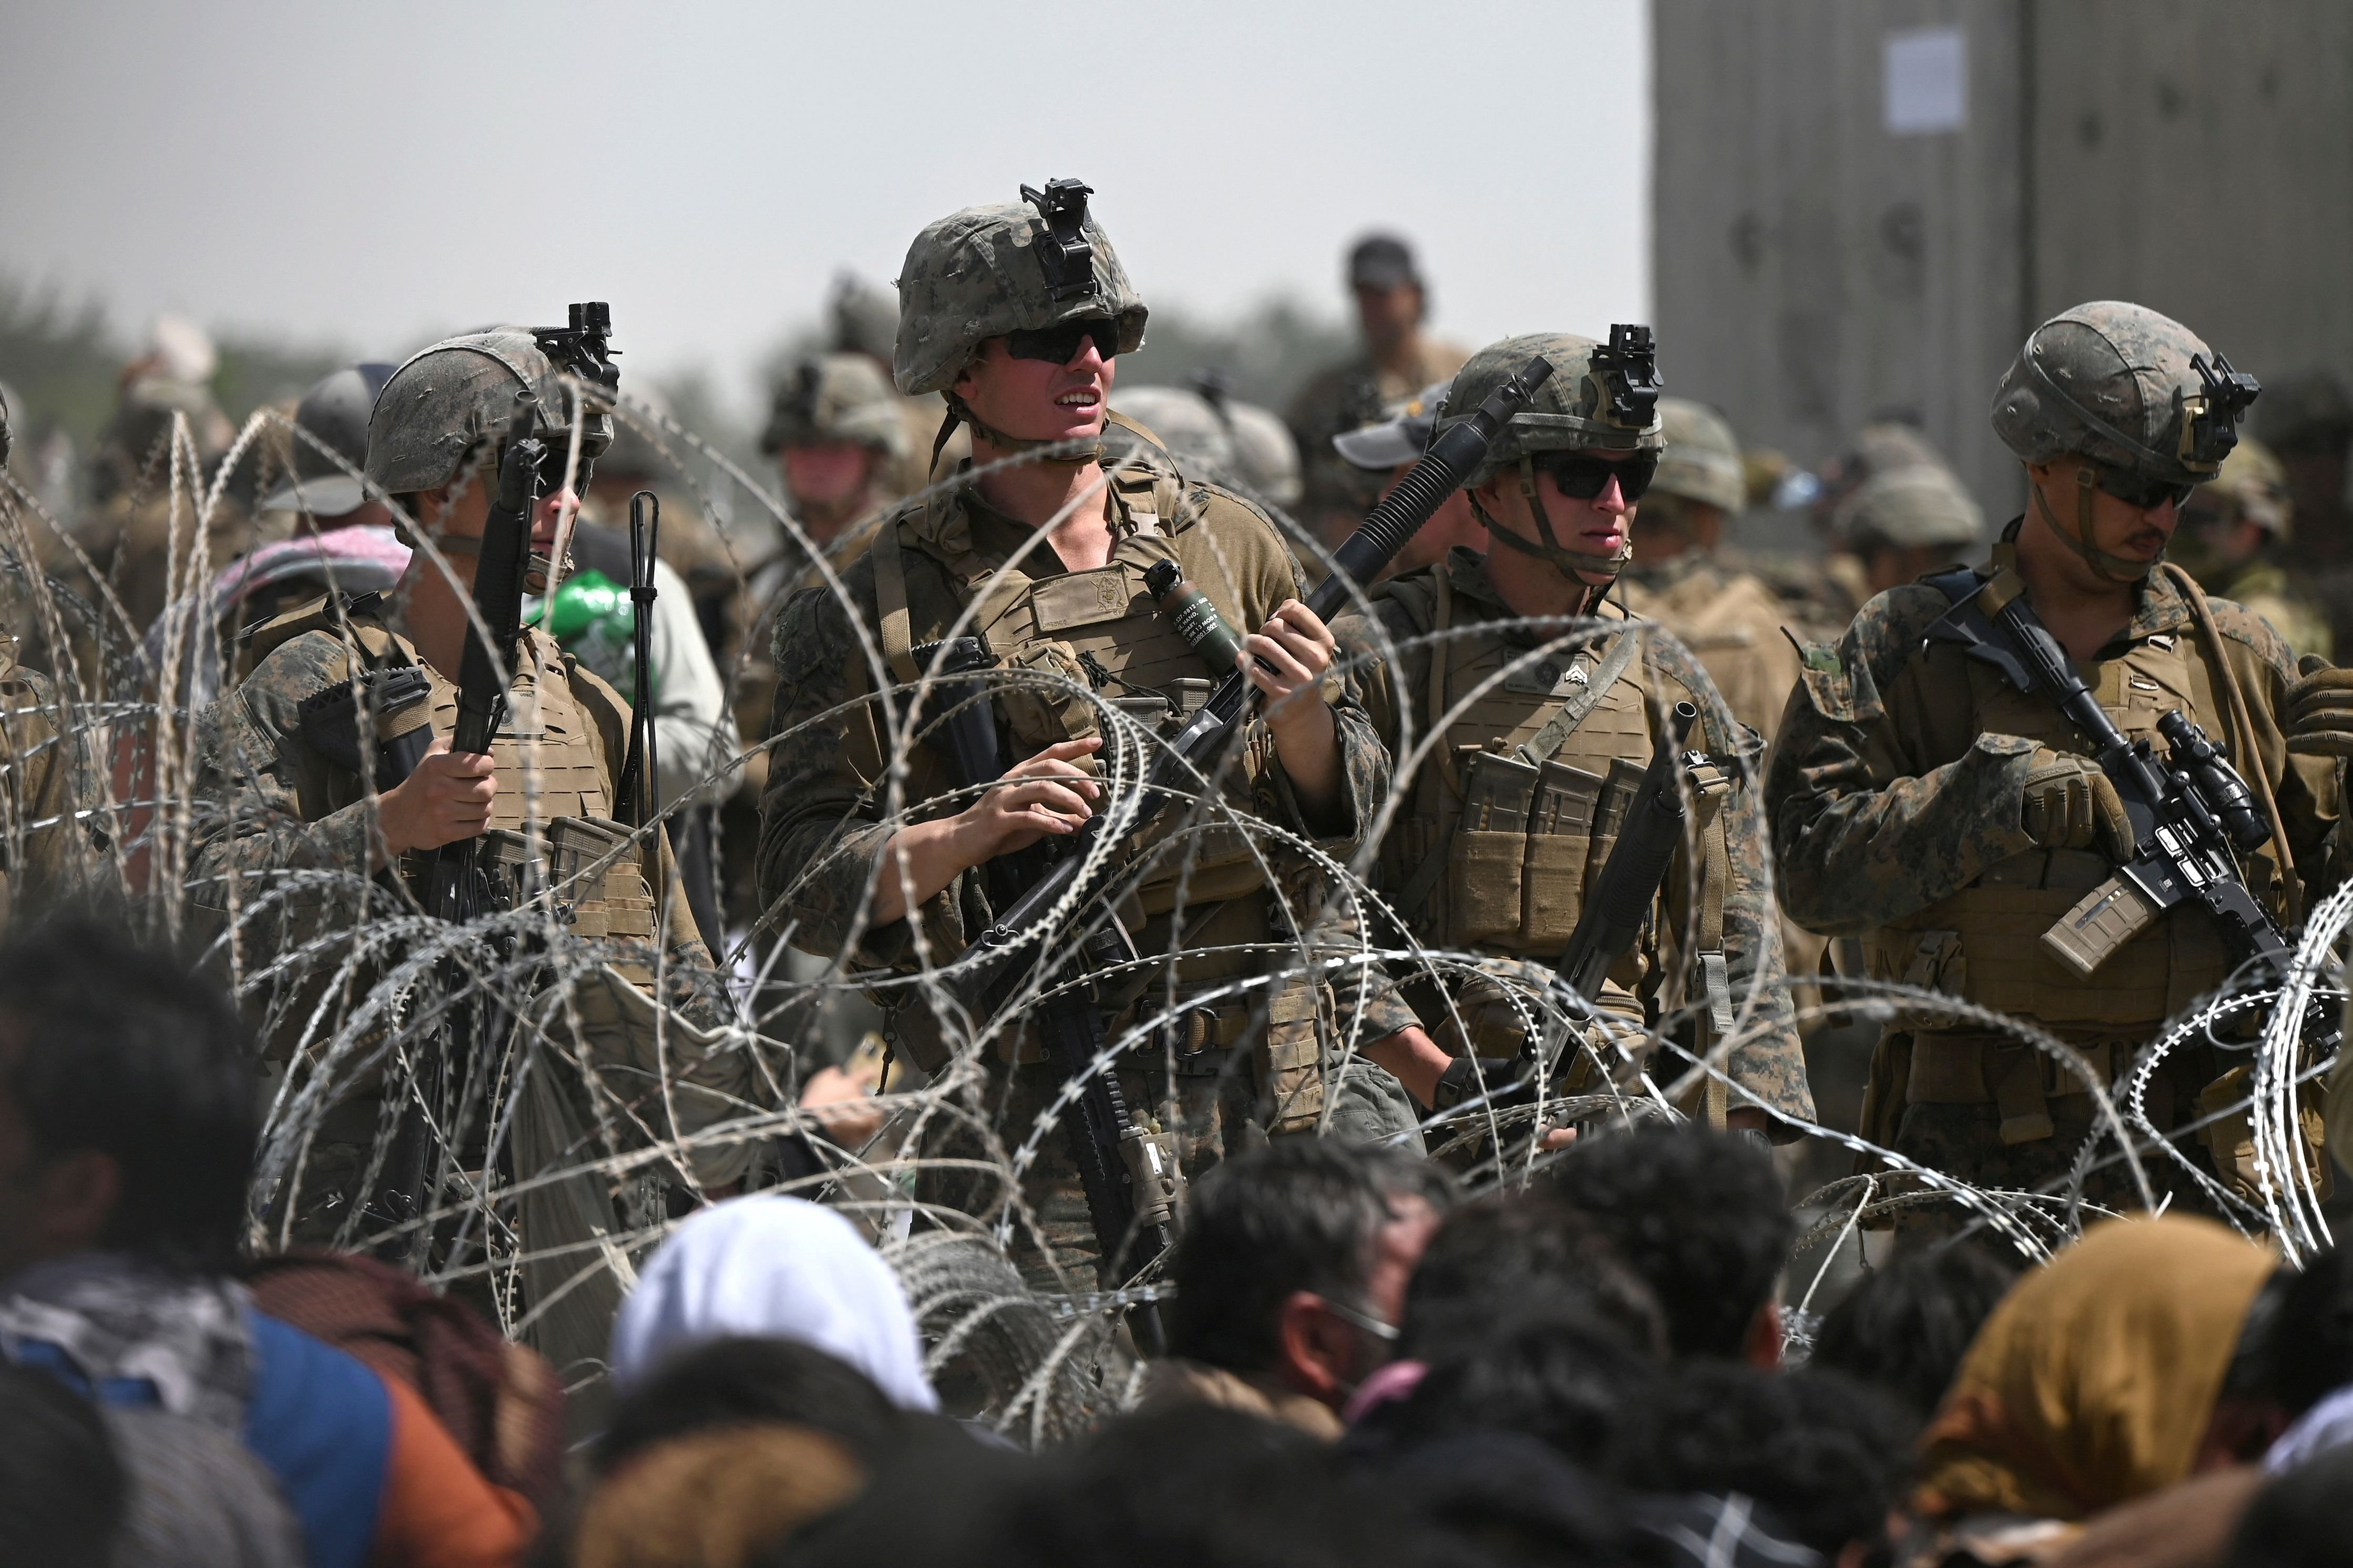 U.S. warns of security threats at Kabul airport as Taliban leaders arrive to form government